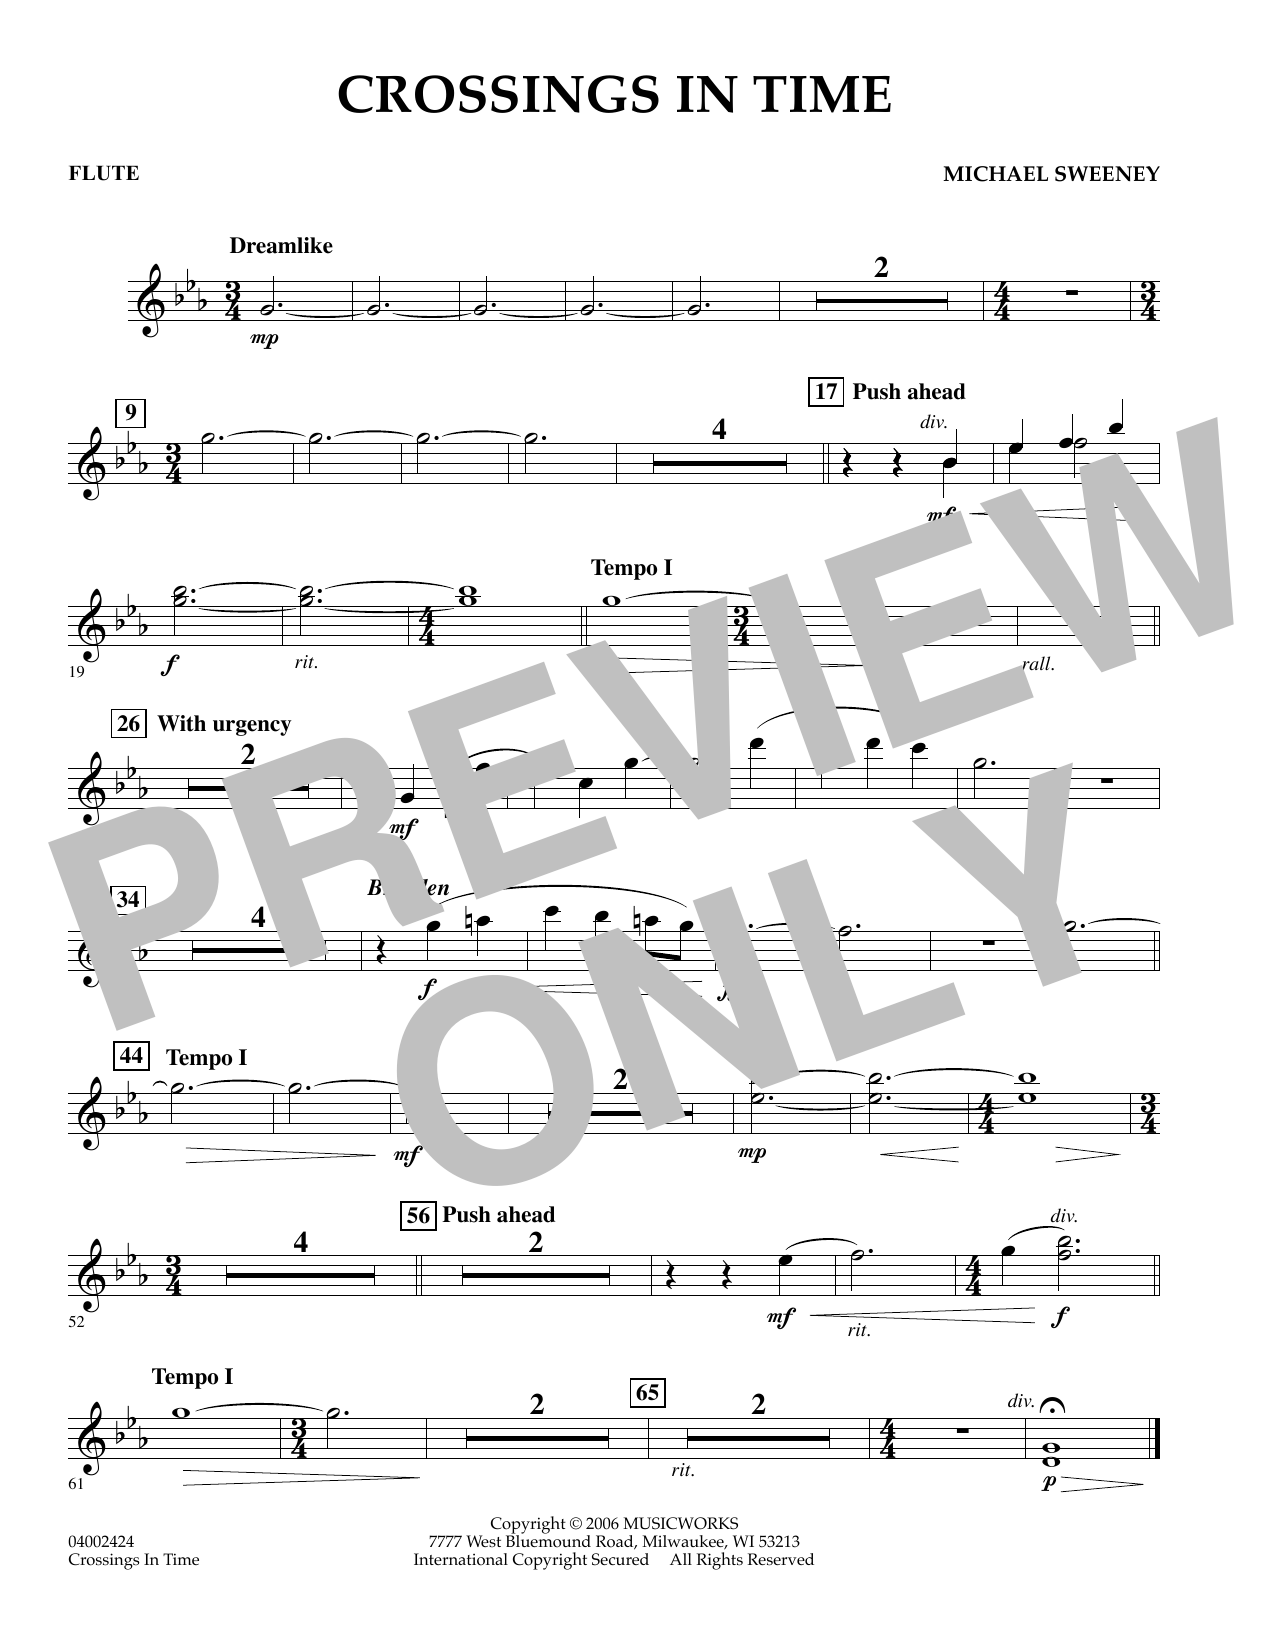 Michael Sweeney Crossings In Time - Flute sheet music preview music notes and score for Concert Band including 1 page(s)